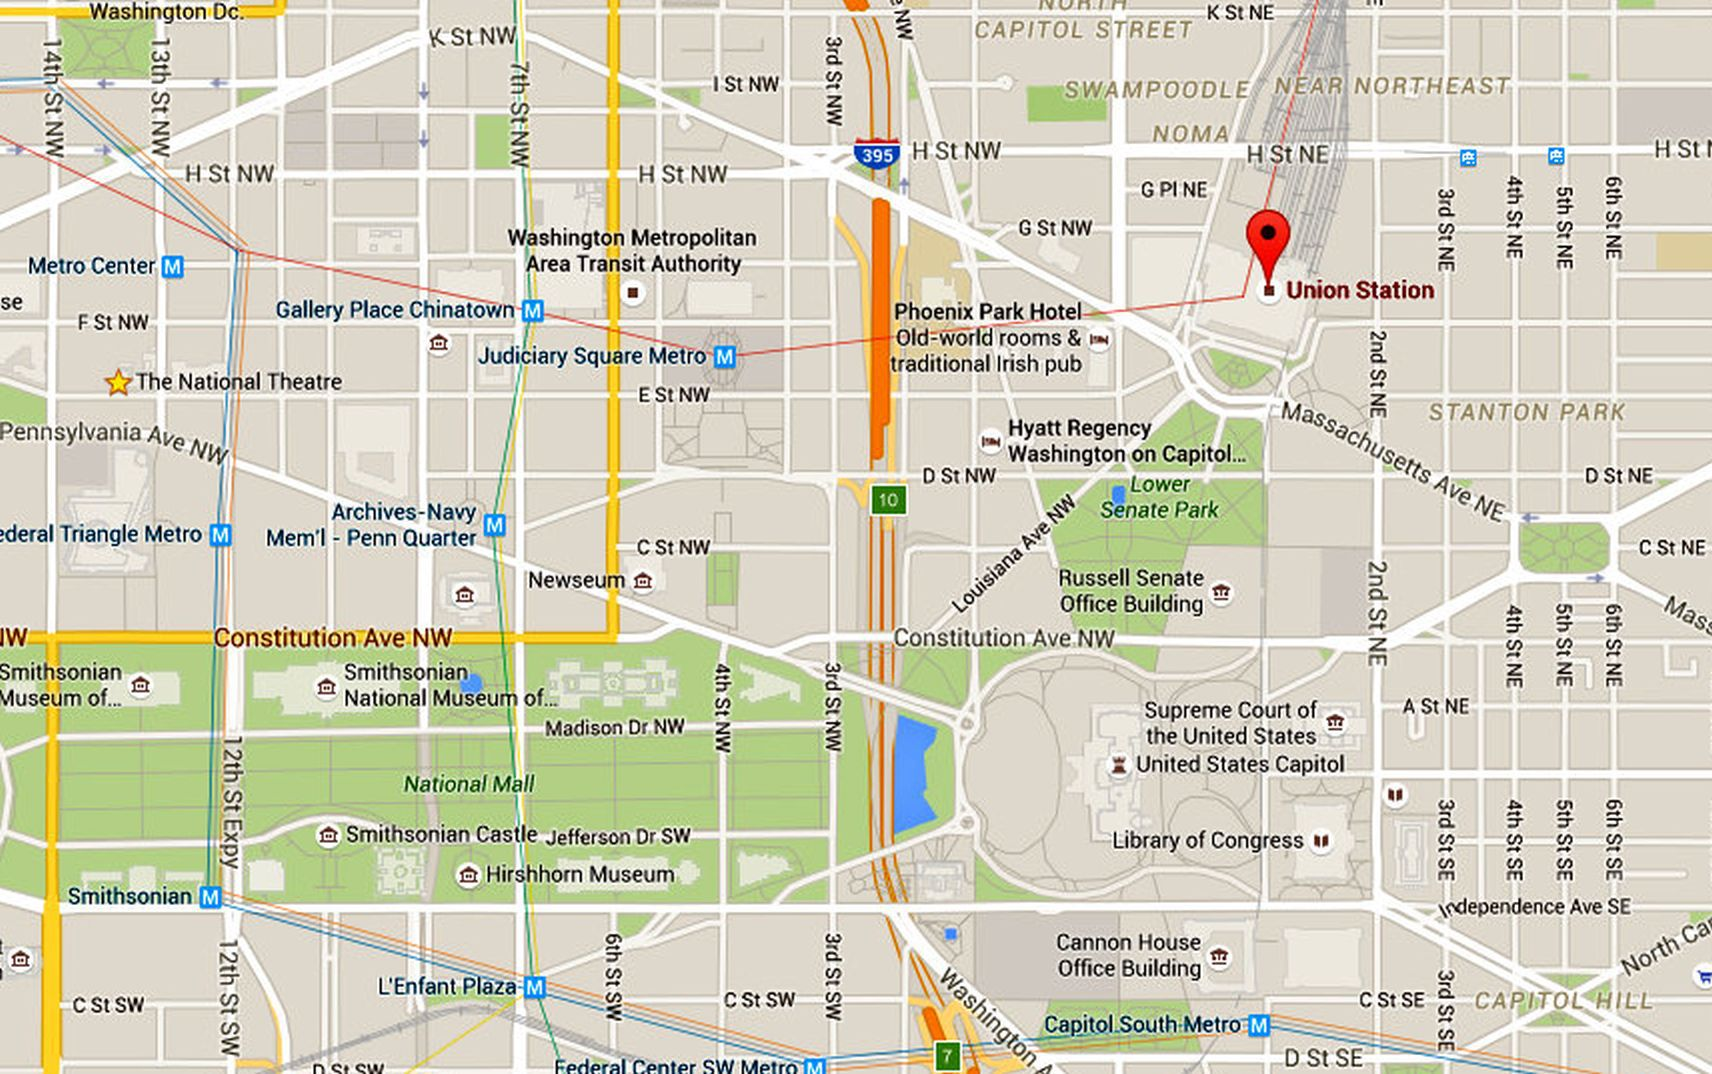 Washington DC By Amtrak Travel To And From DC By Train - Chicago union station map